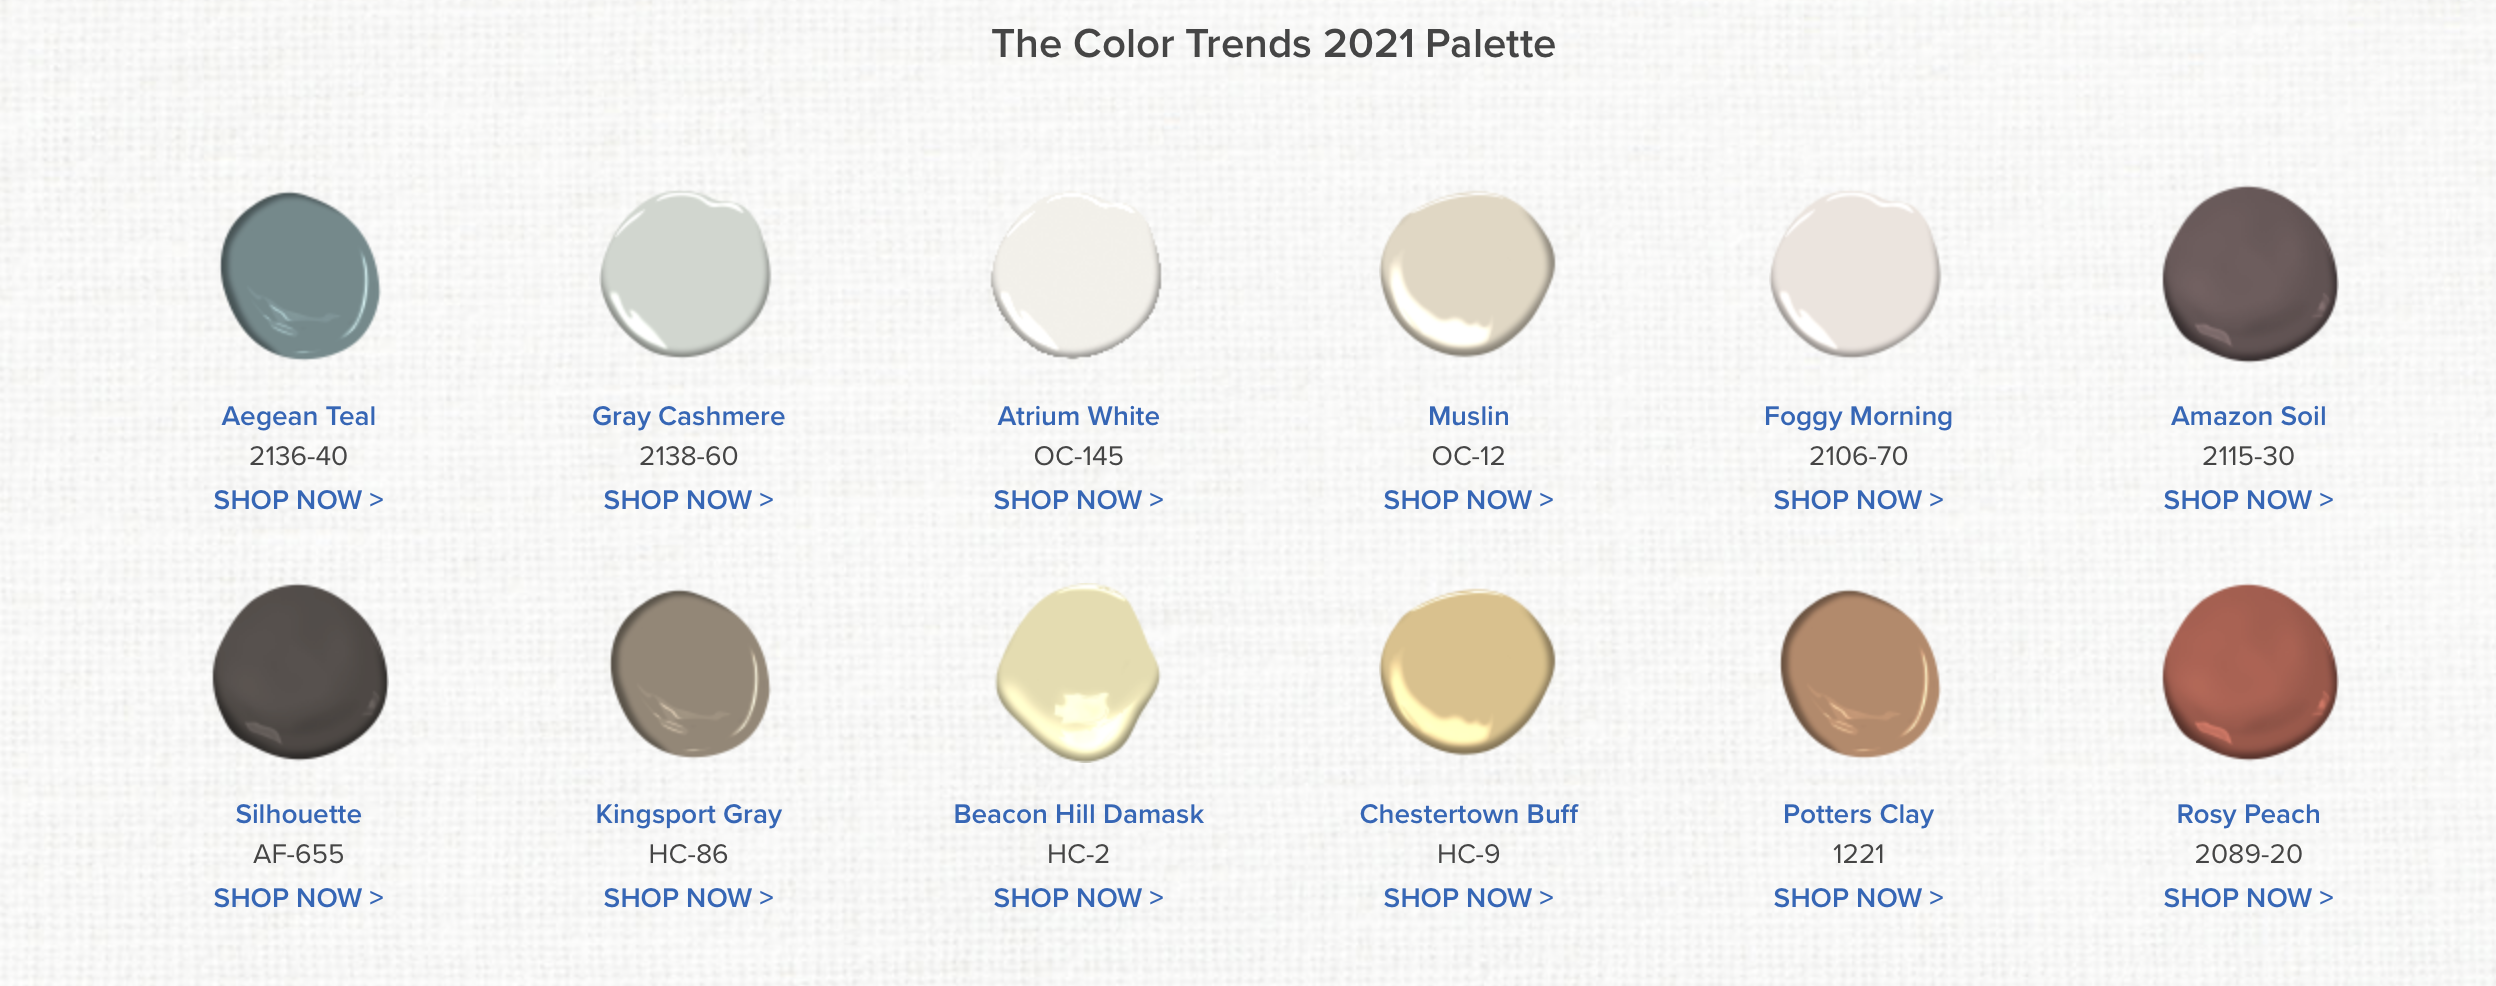 The Benjamin Moore Color Trends 2021 Palette for Paint Colors.